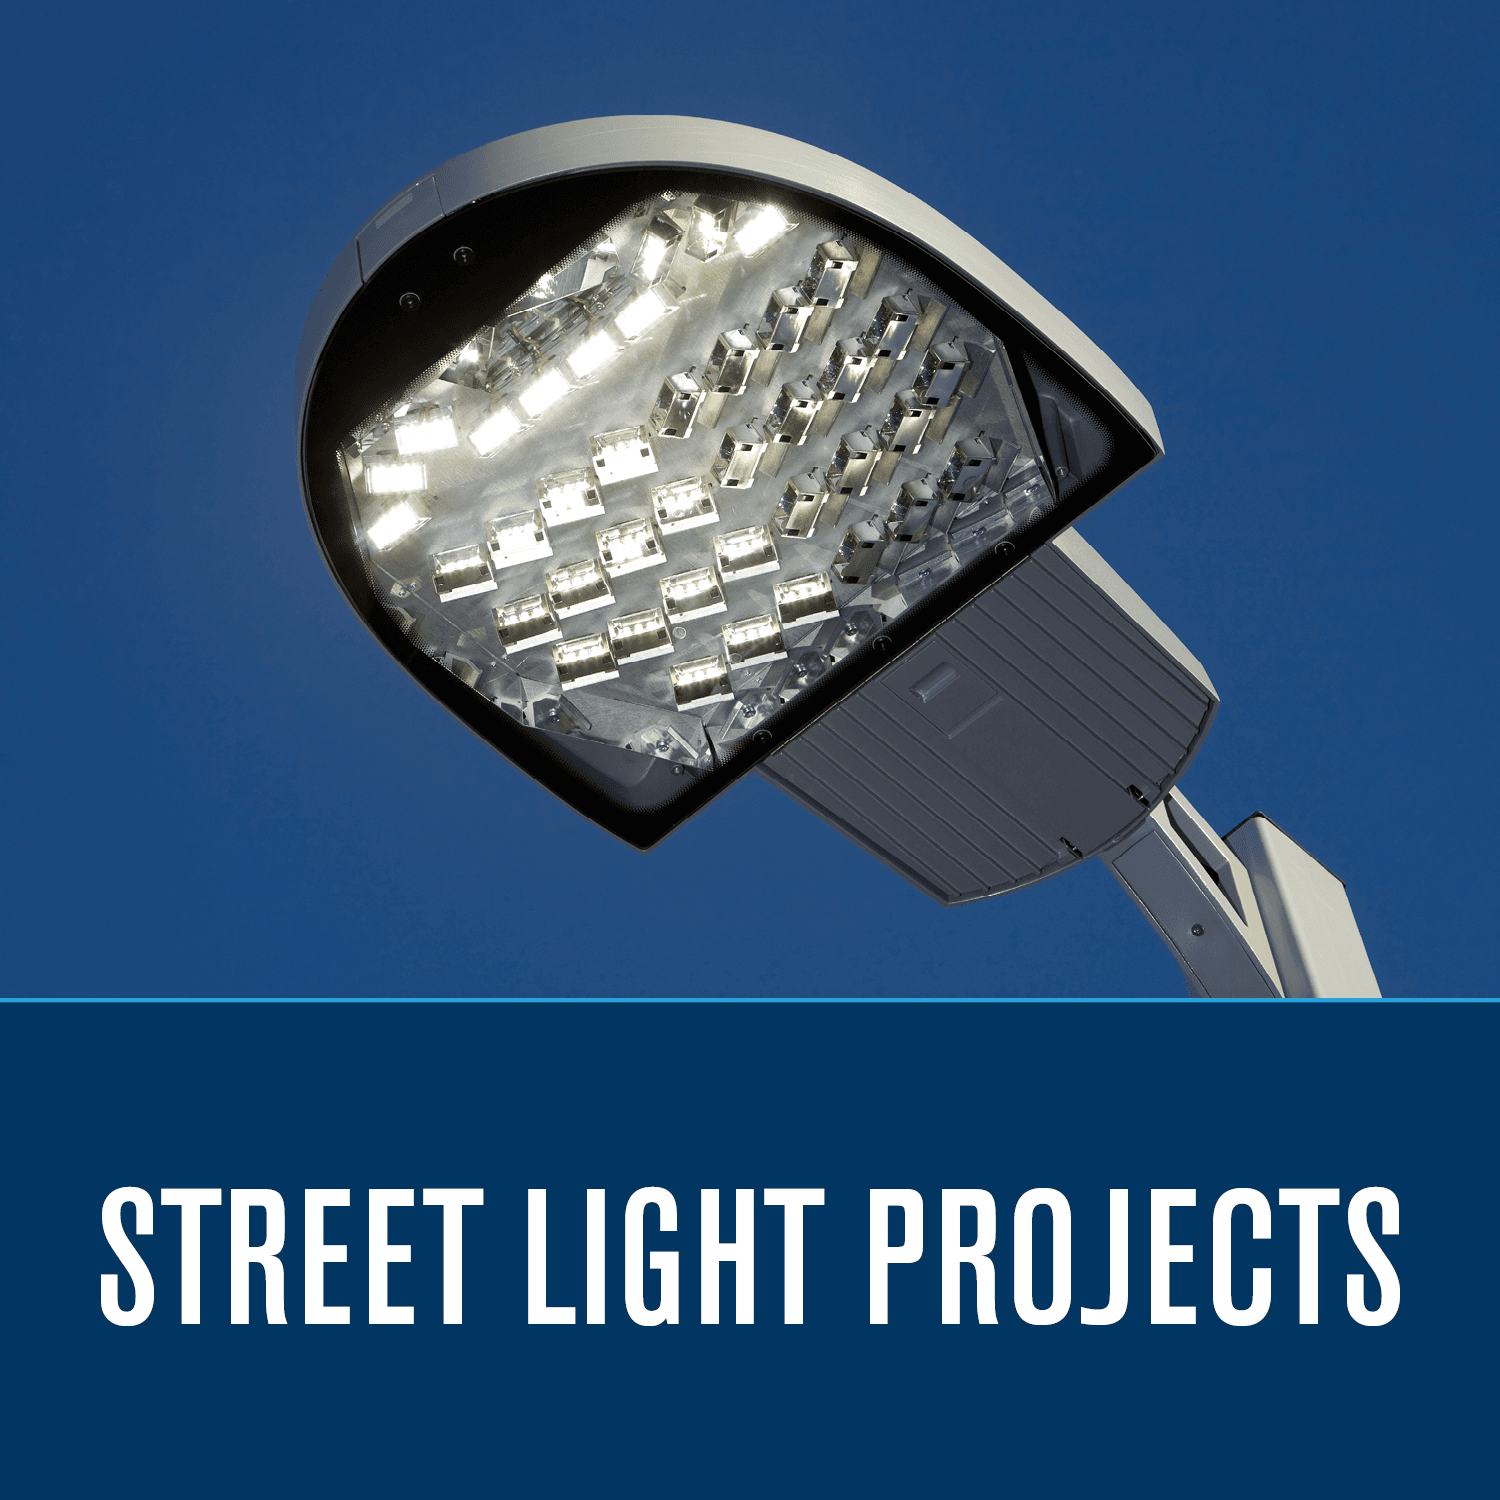 Street Light Projects